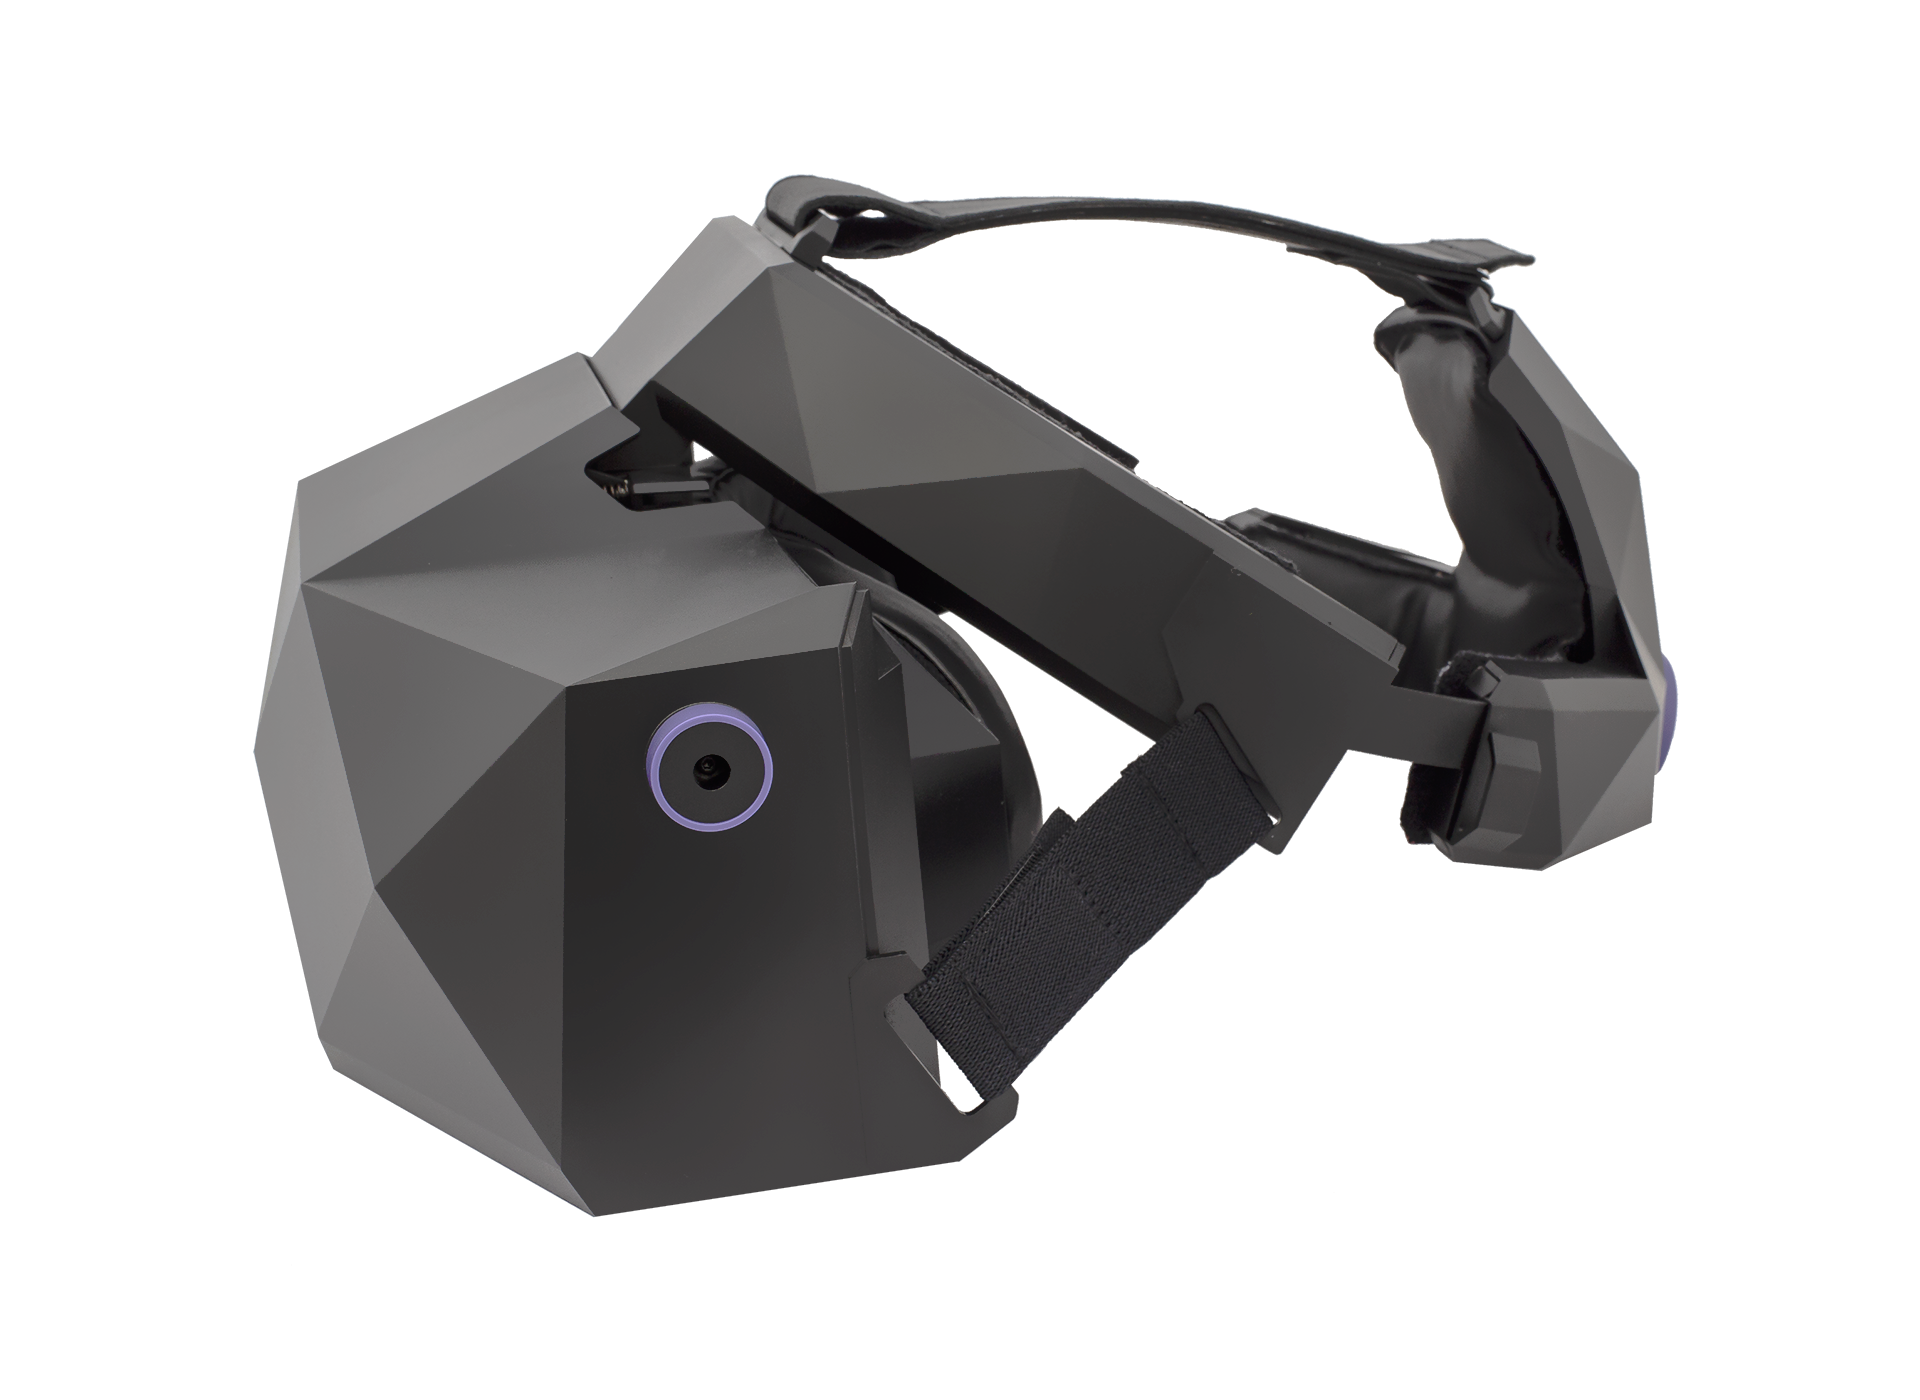 XTAL 5K high-end VR headset left view